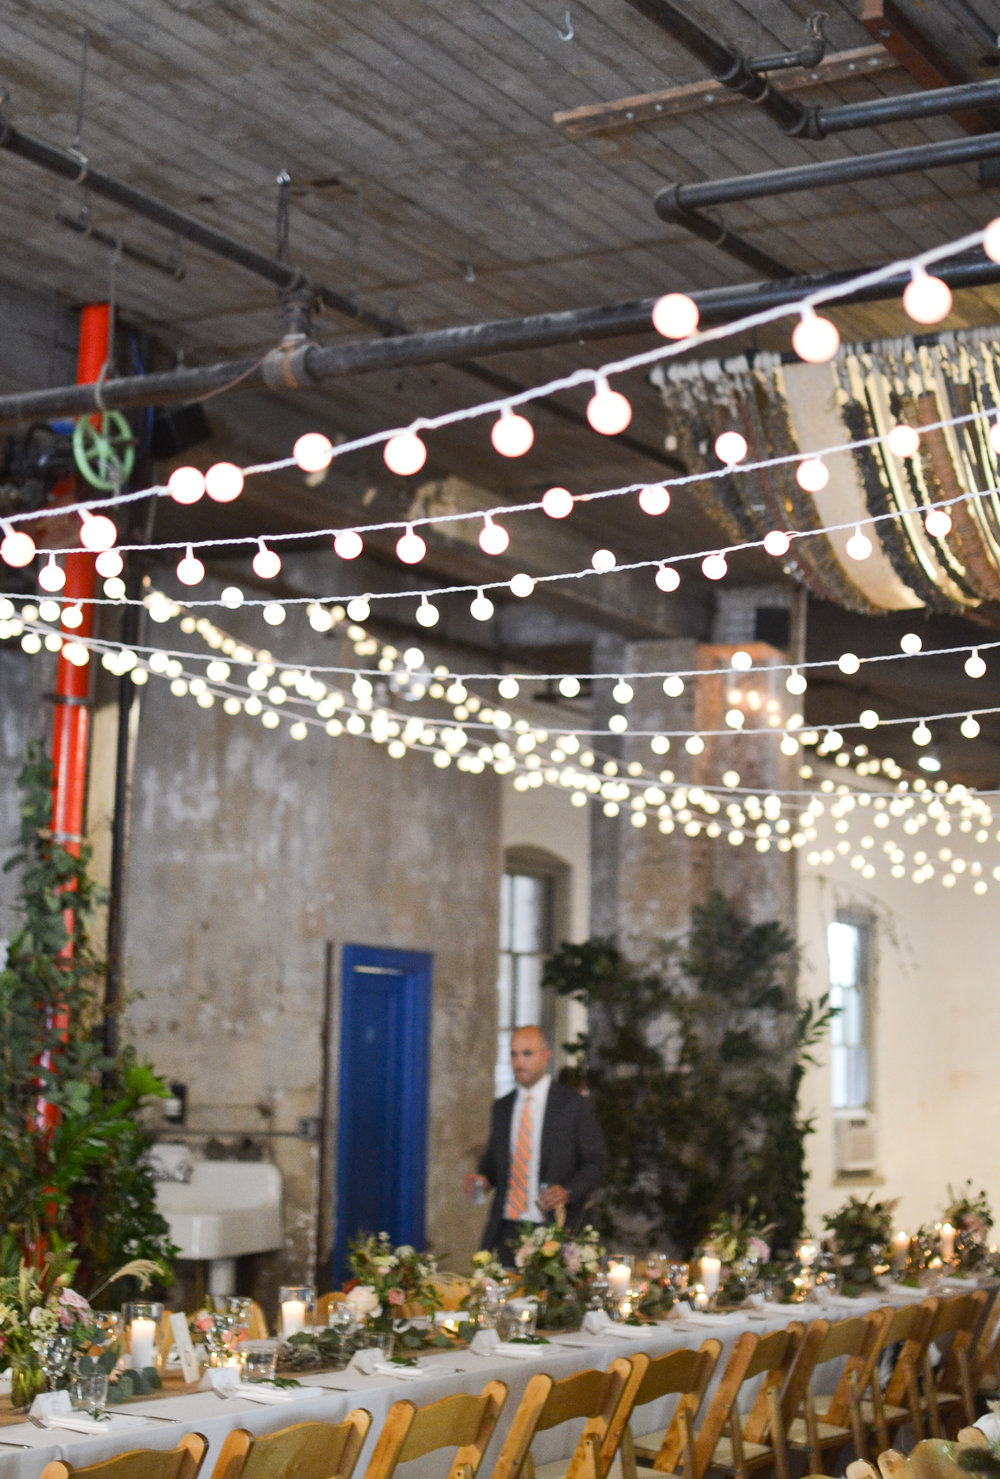 Lovely string lights over the wild garden style tables at this Brooklyn wedding